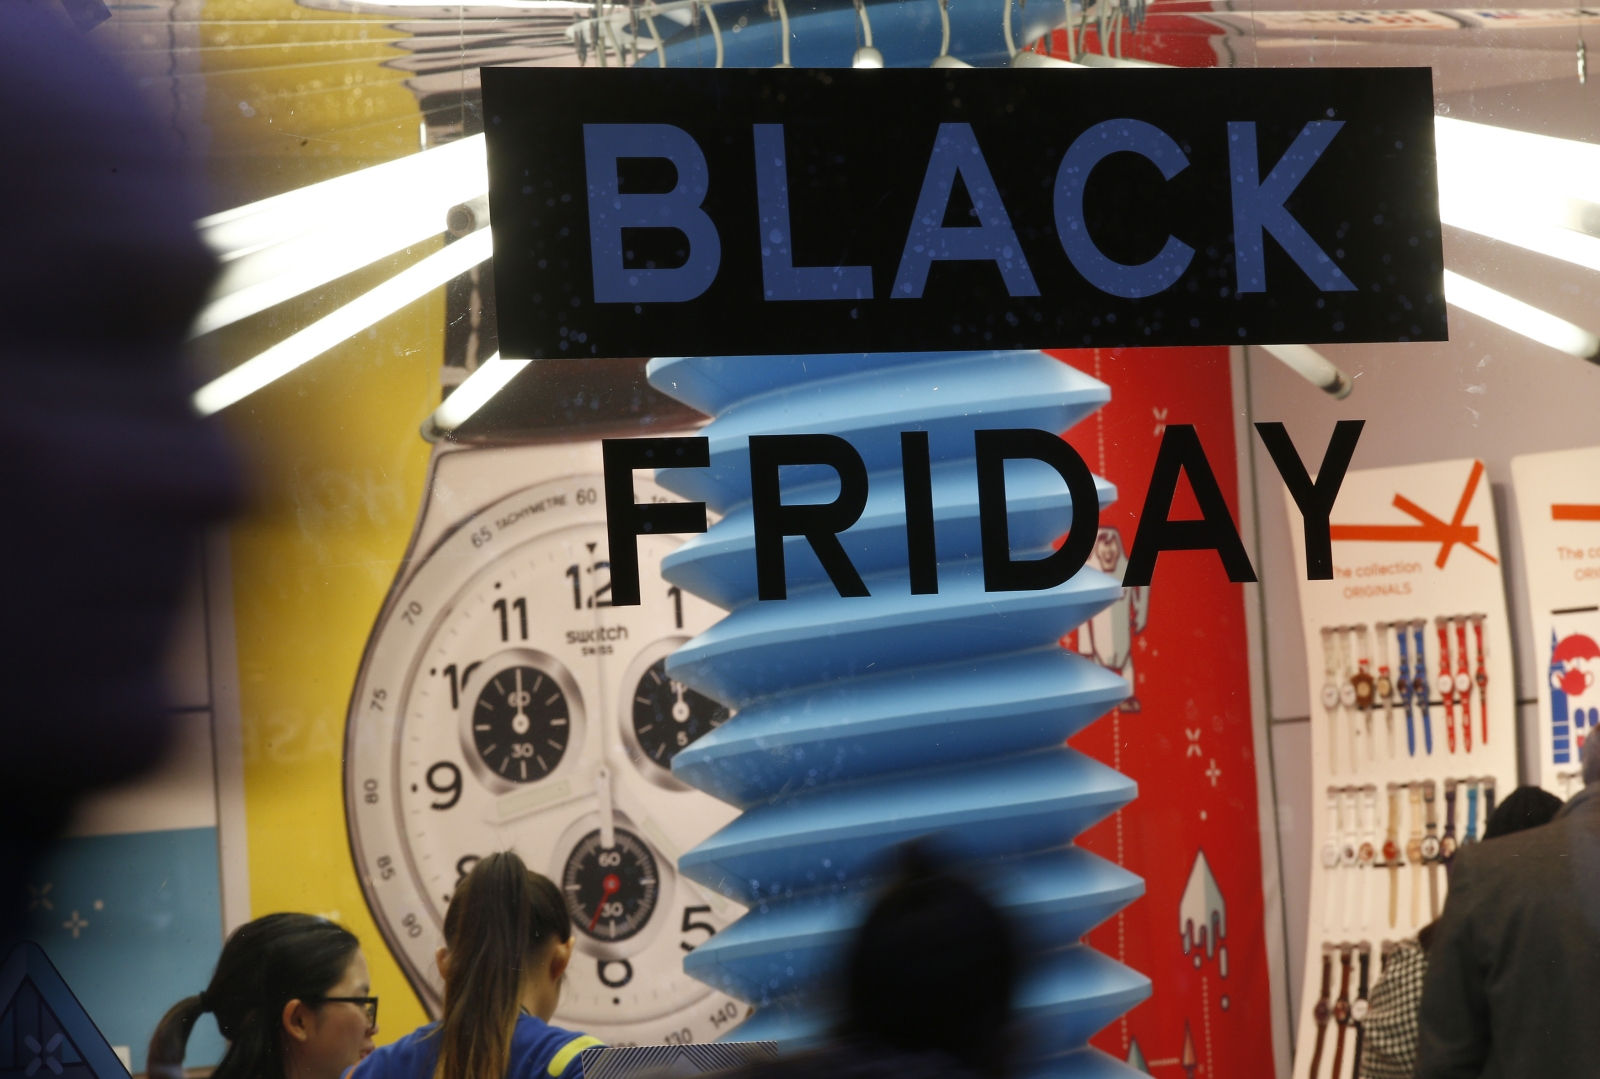 Black Friday 2016 in UK